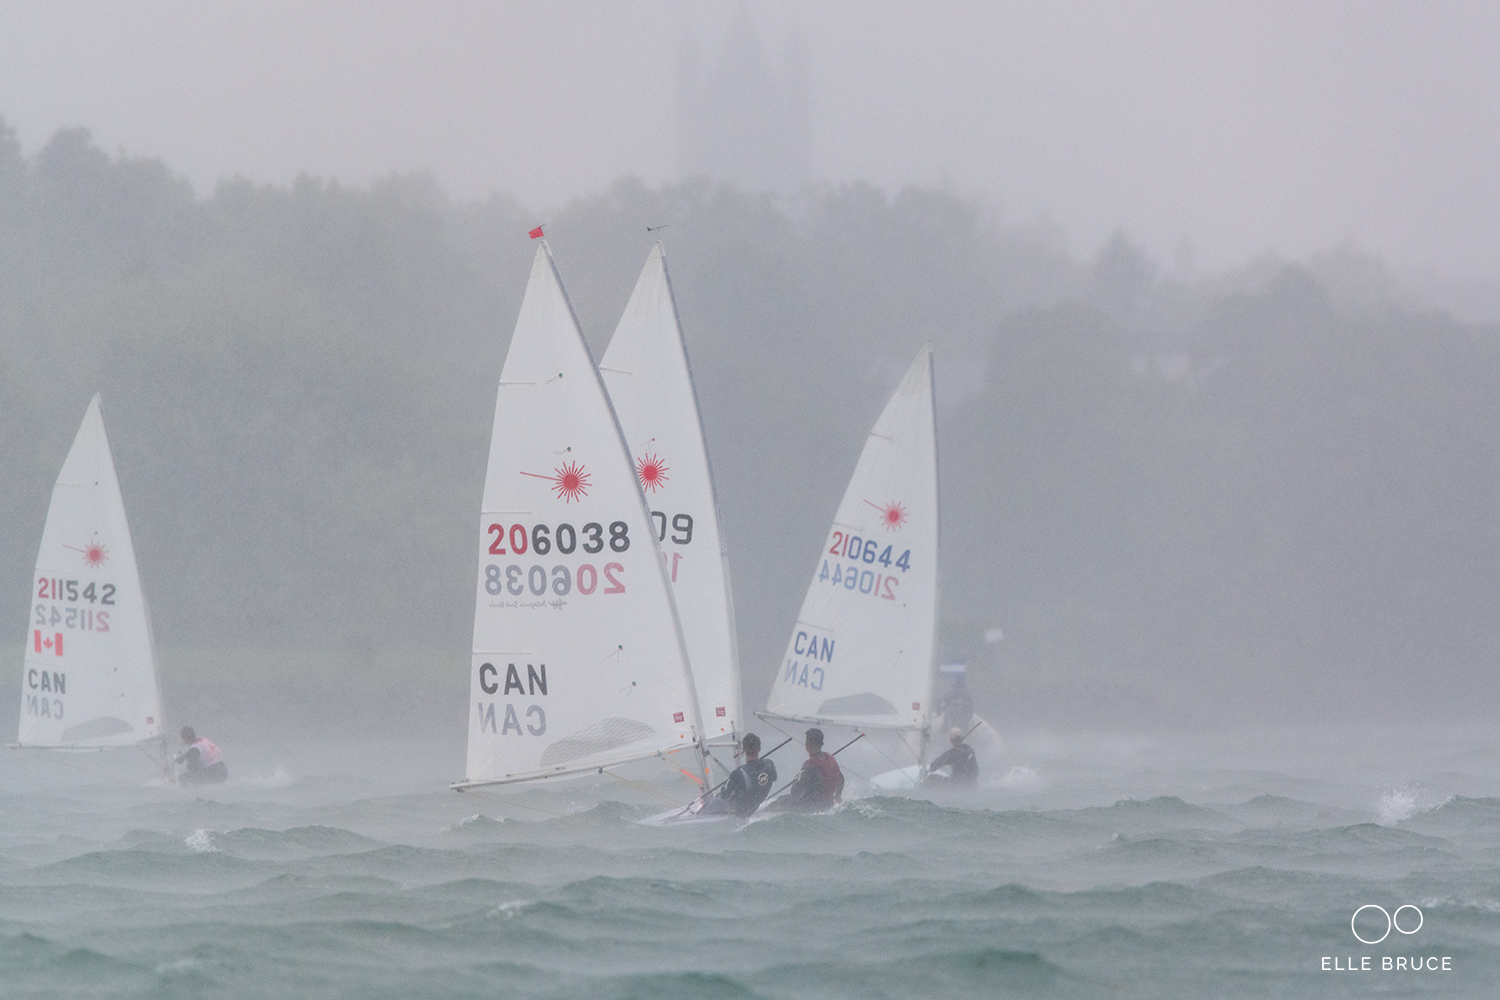 A line squall came through on the final day and when the visibility dropped the Race Committee sent us in. It was a quick if wet reach back to the harbour.  (#206038)